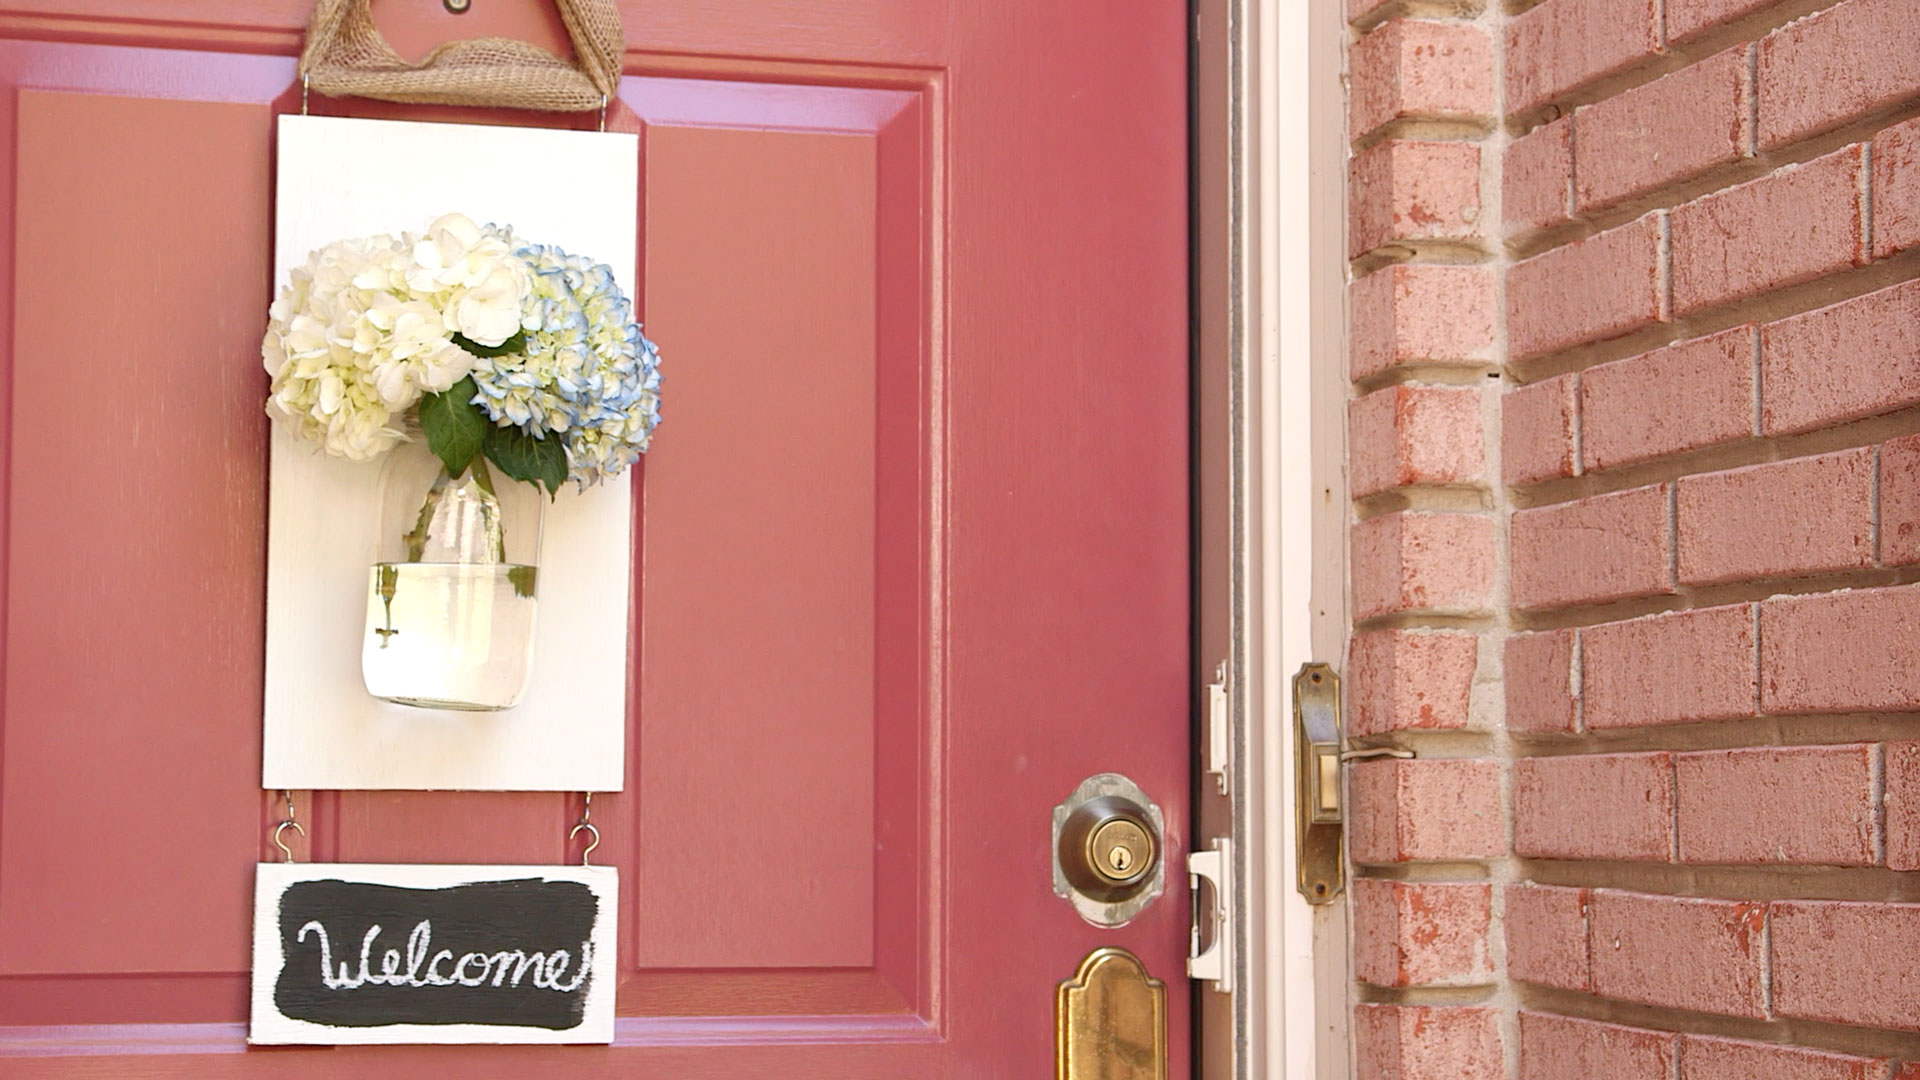 Welcome Guests with a Hanging Mason Jar Flower Vase